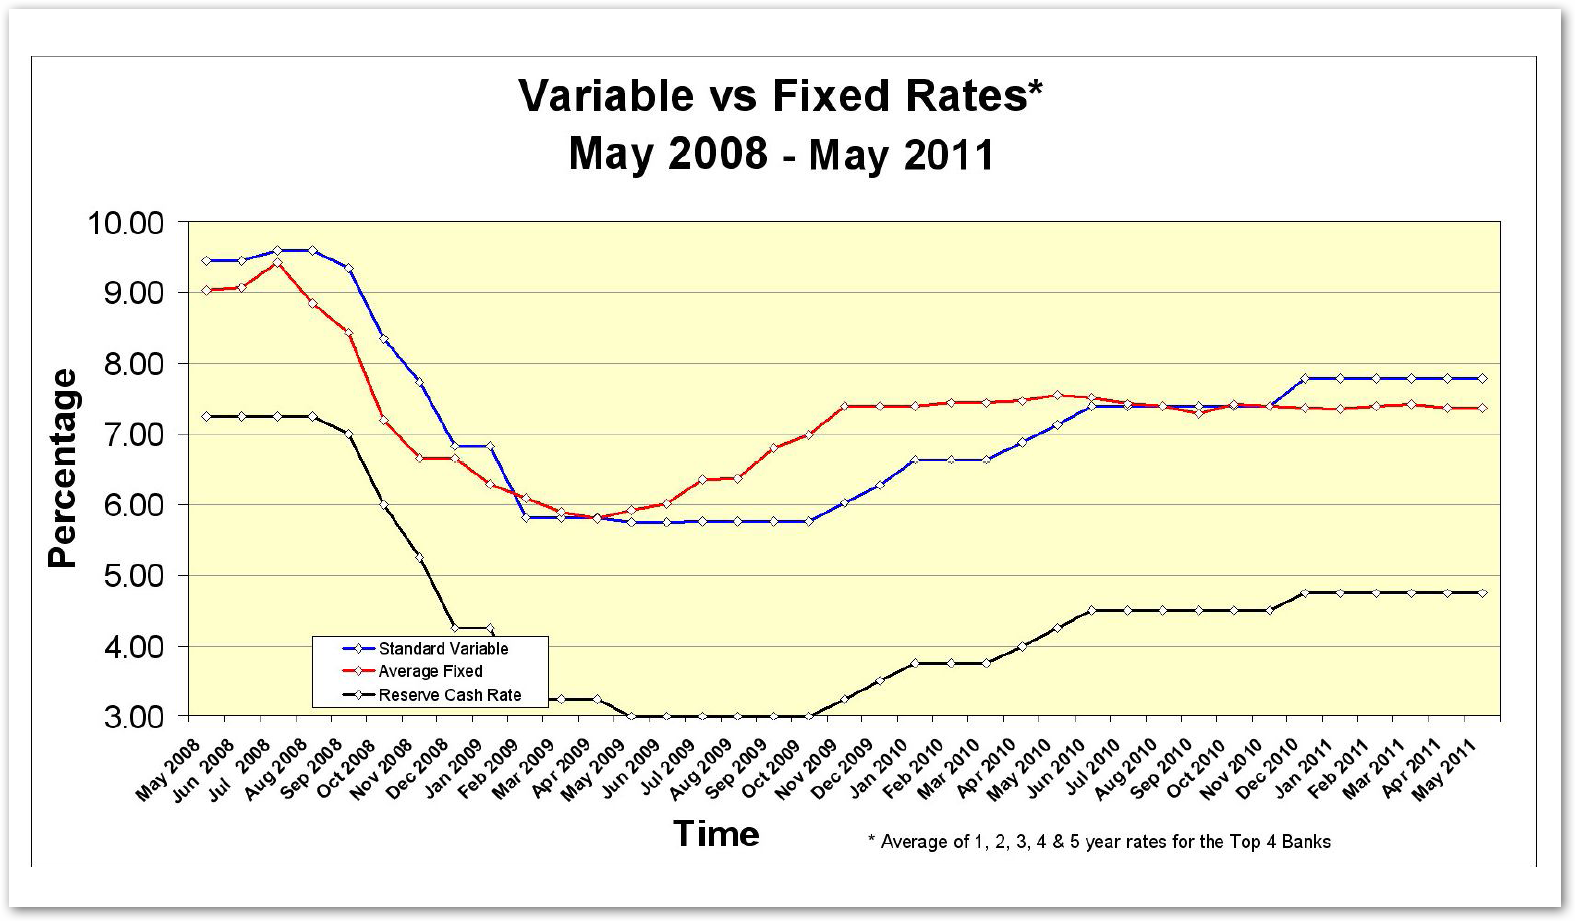 Fix rate VS Variable Rate